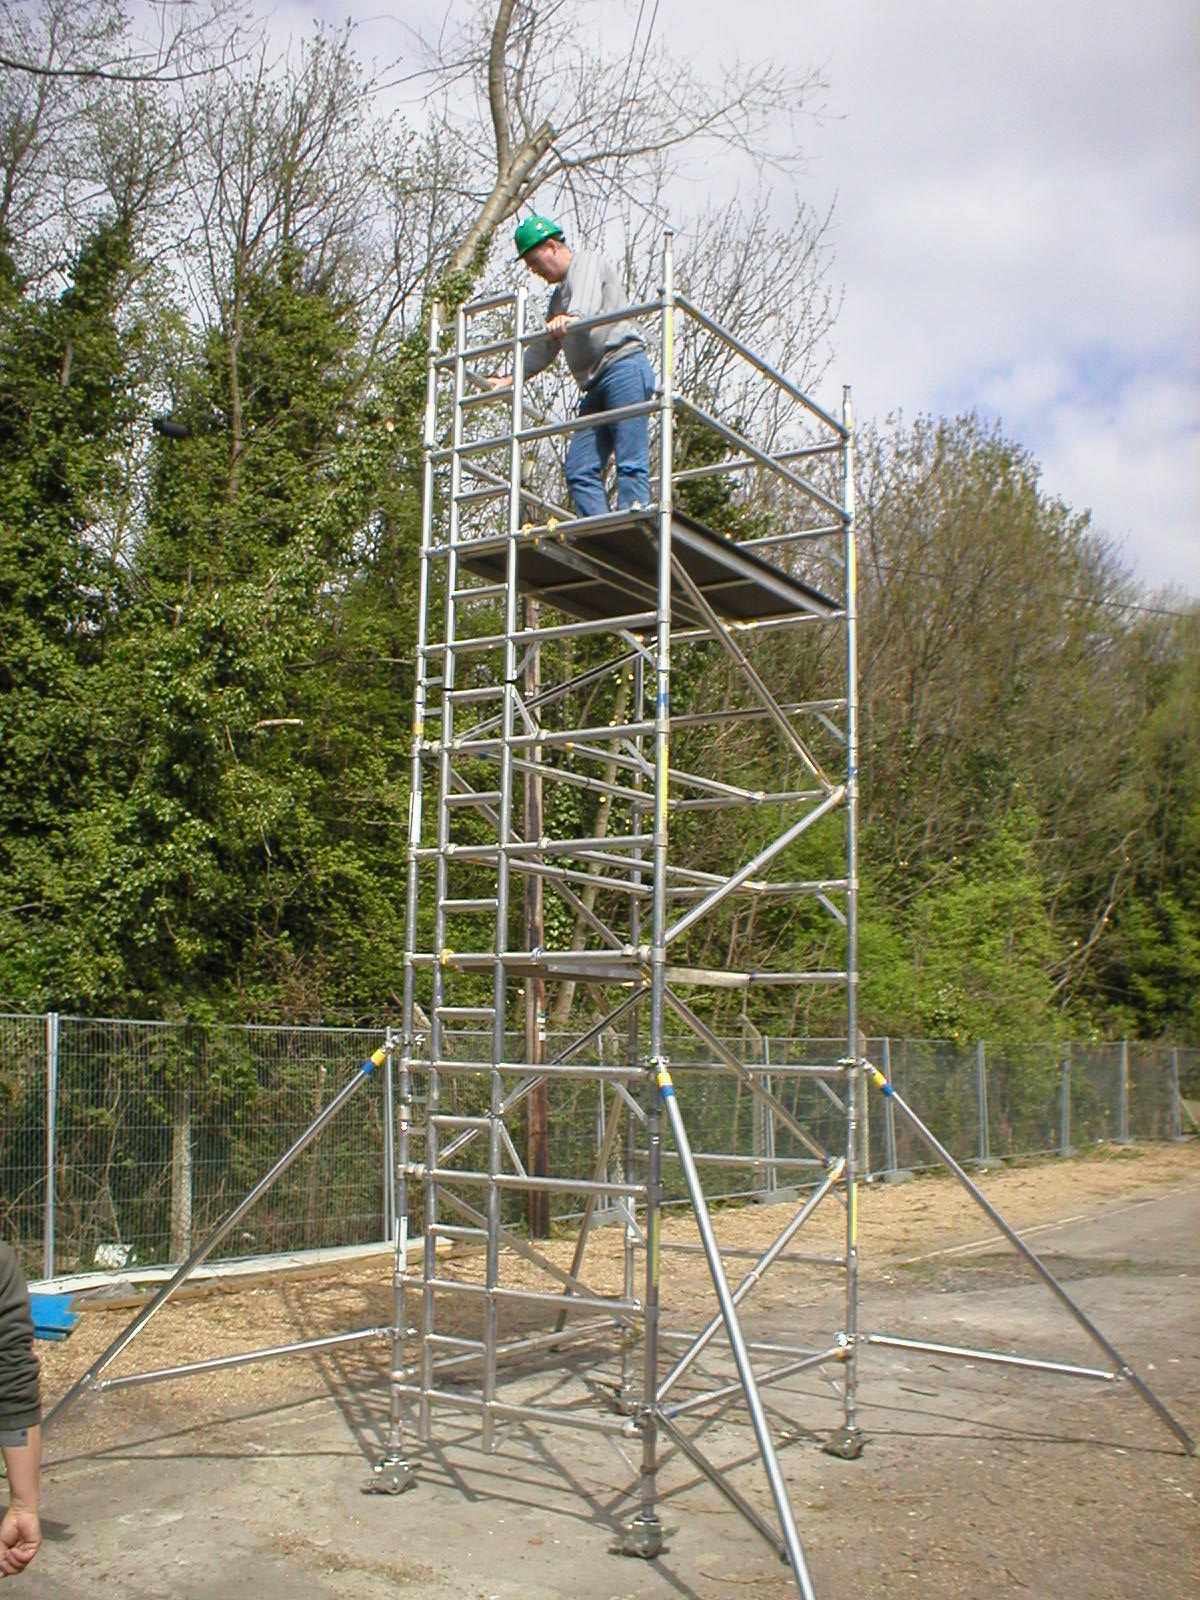 Tower Course Pics 010.jpg